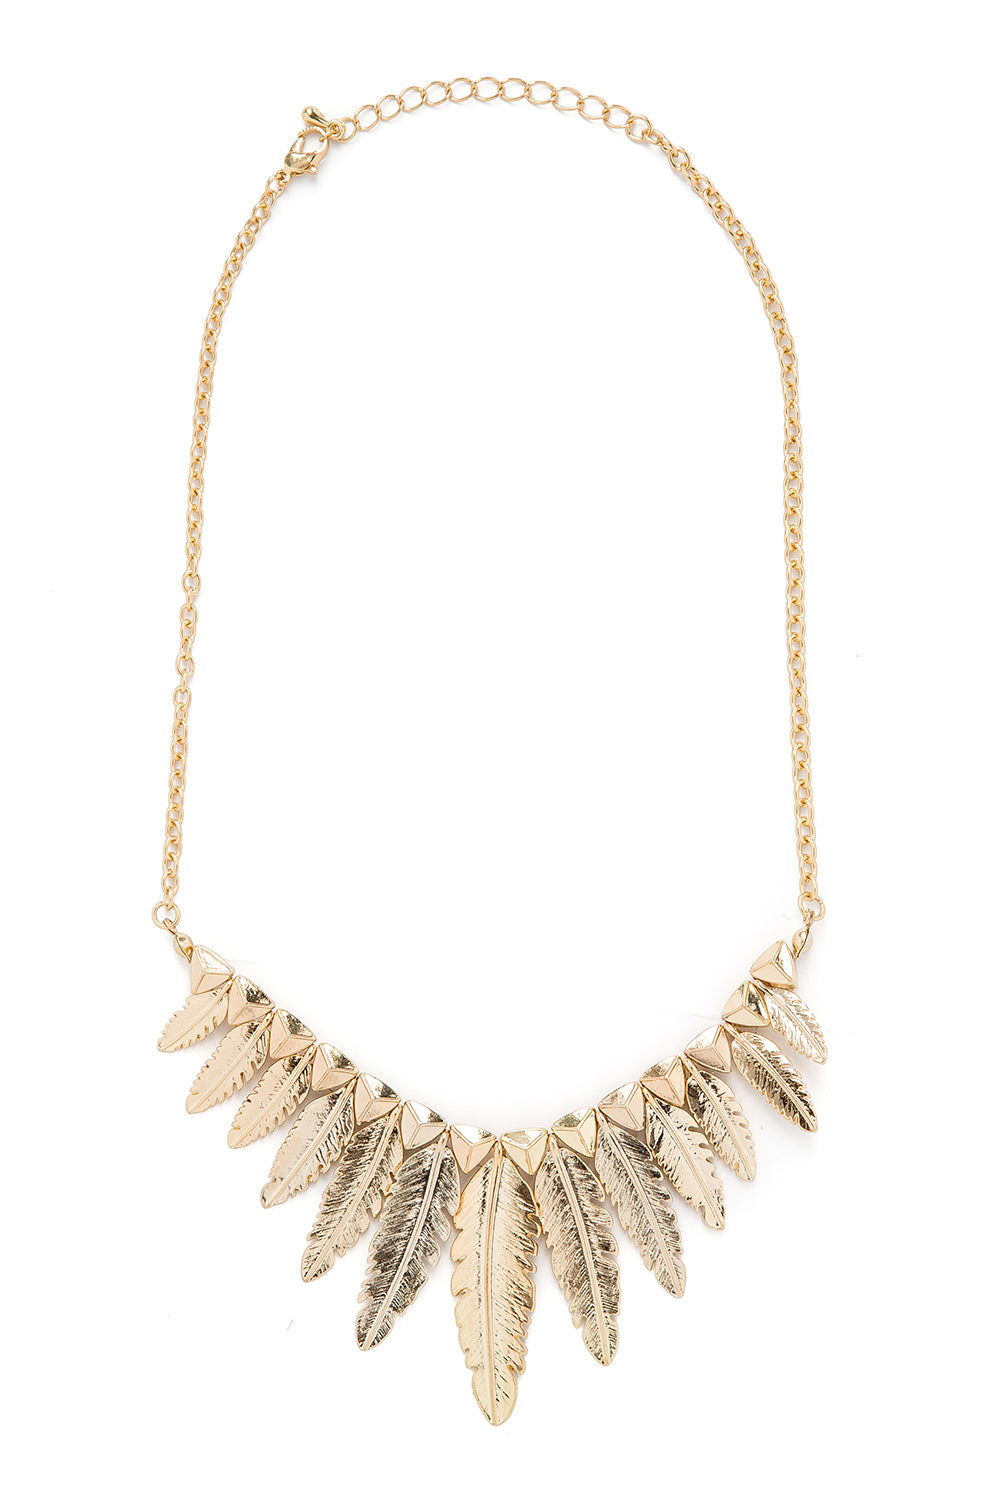 Type 3 Jagged Edge Necklace